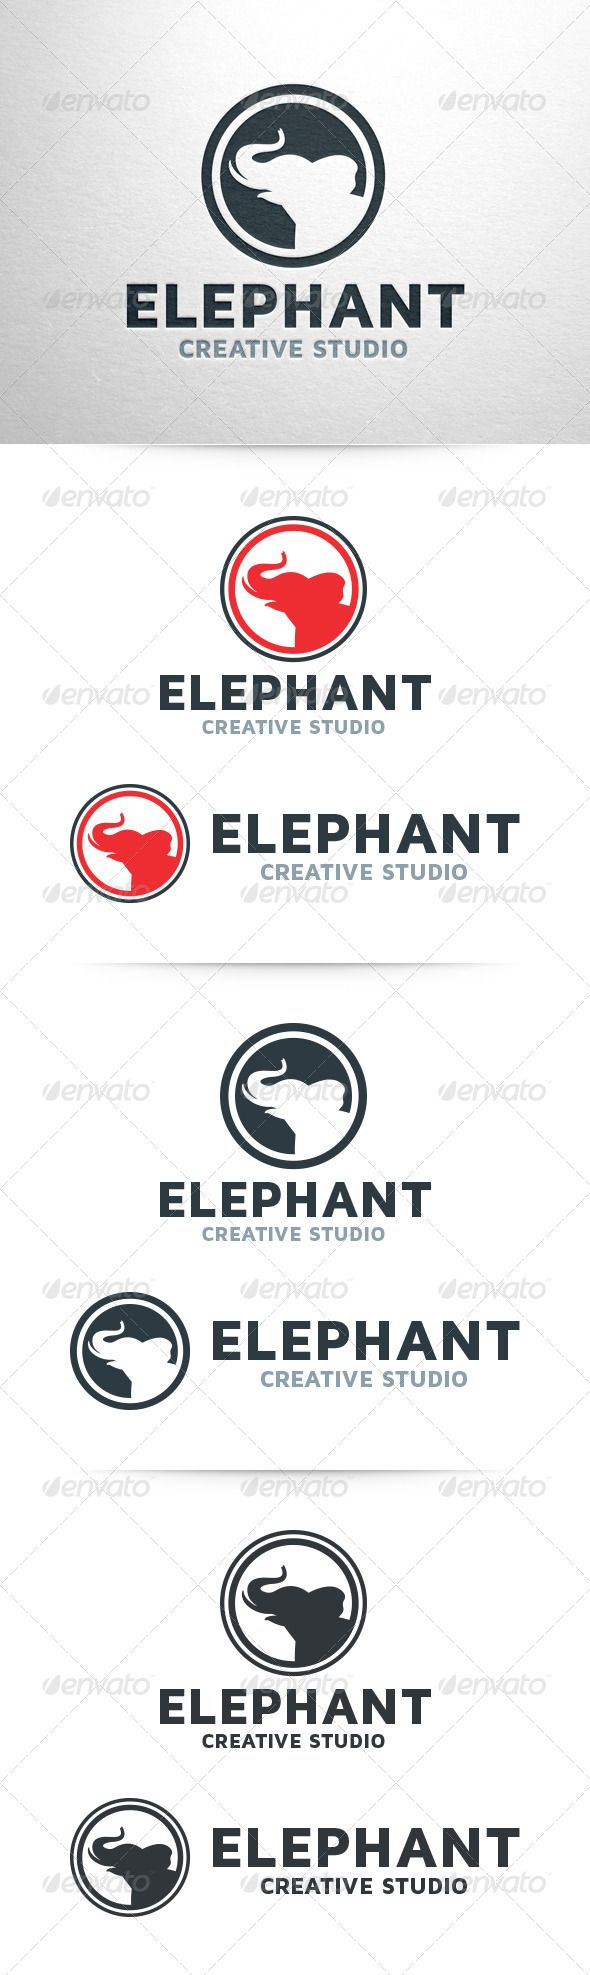 Elephant Logo Template — Vector EPS #logo #studio • Available here → https://graphicriver.net/item/elephant-logo-template/6537254?ref=pxcr